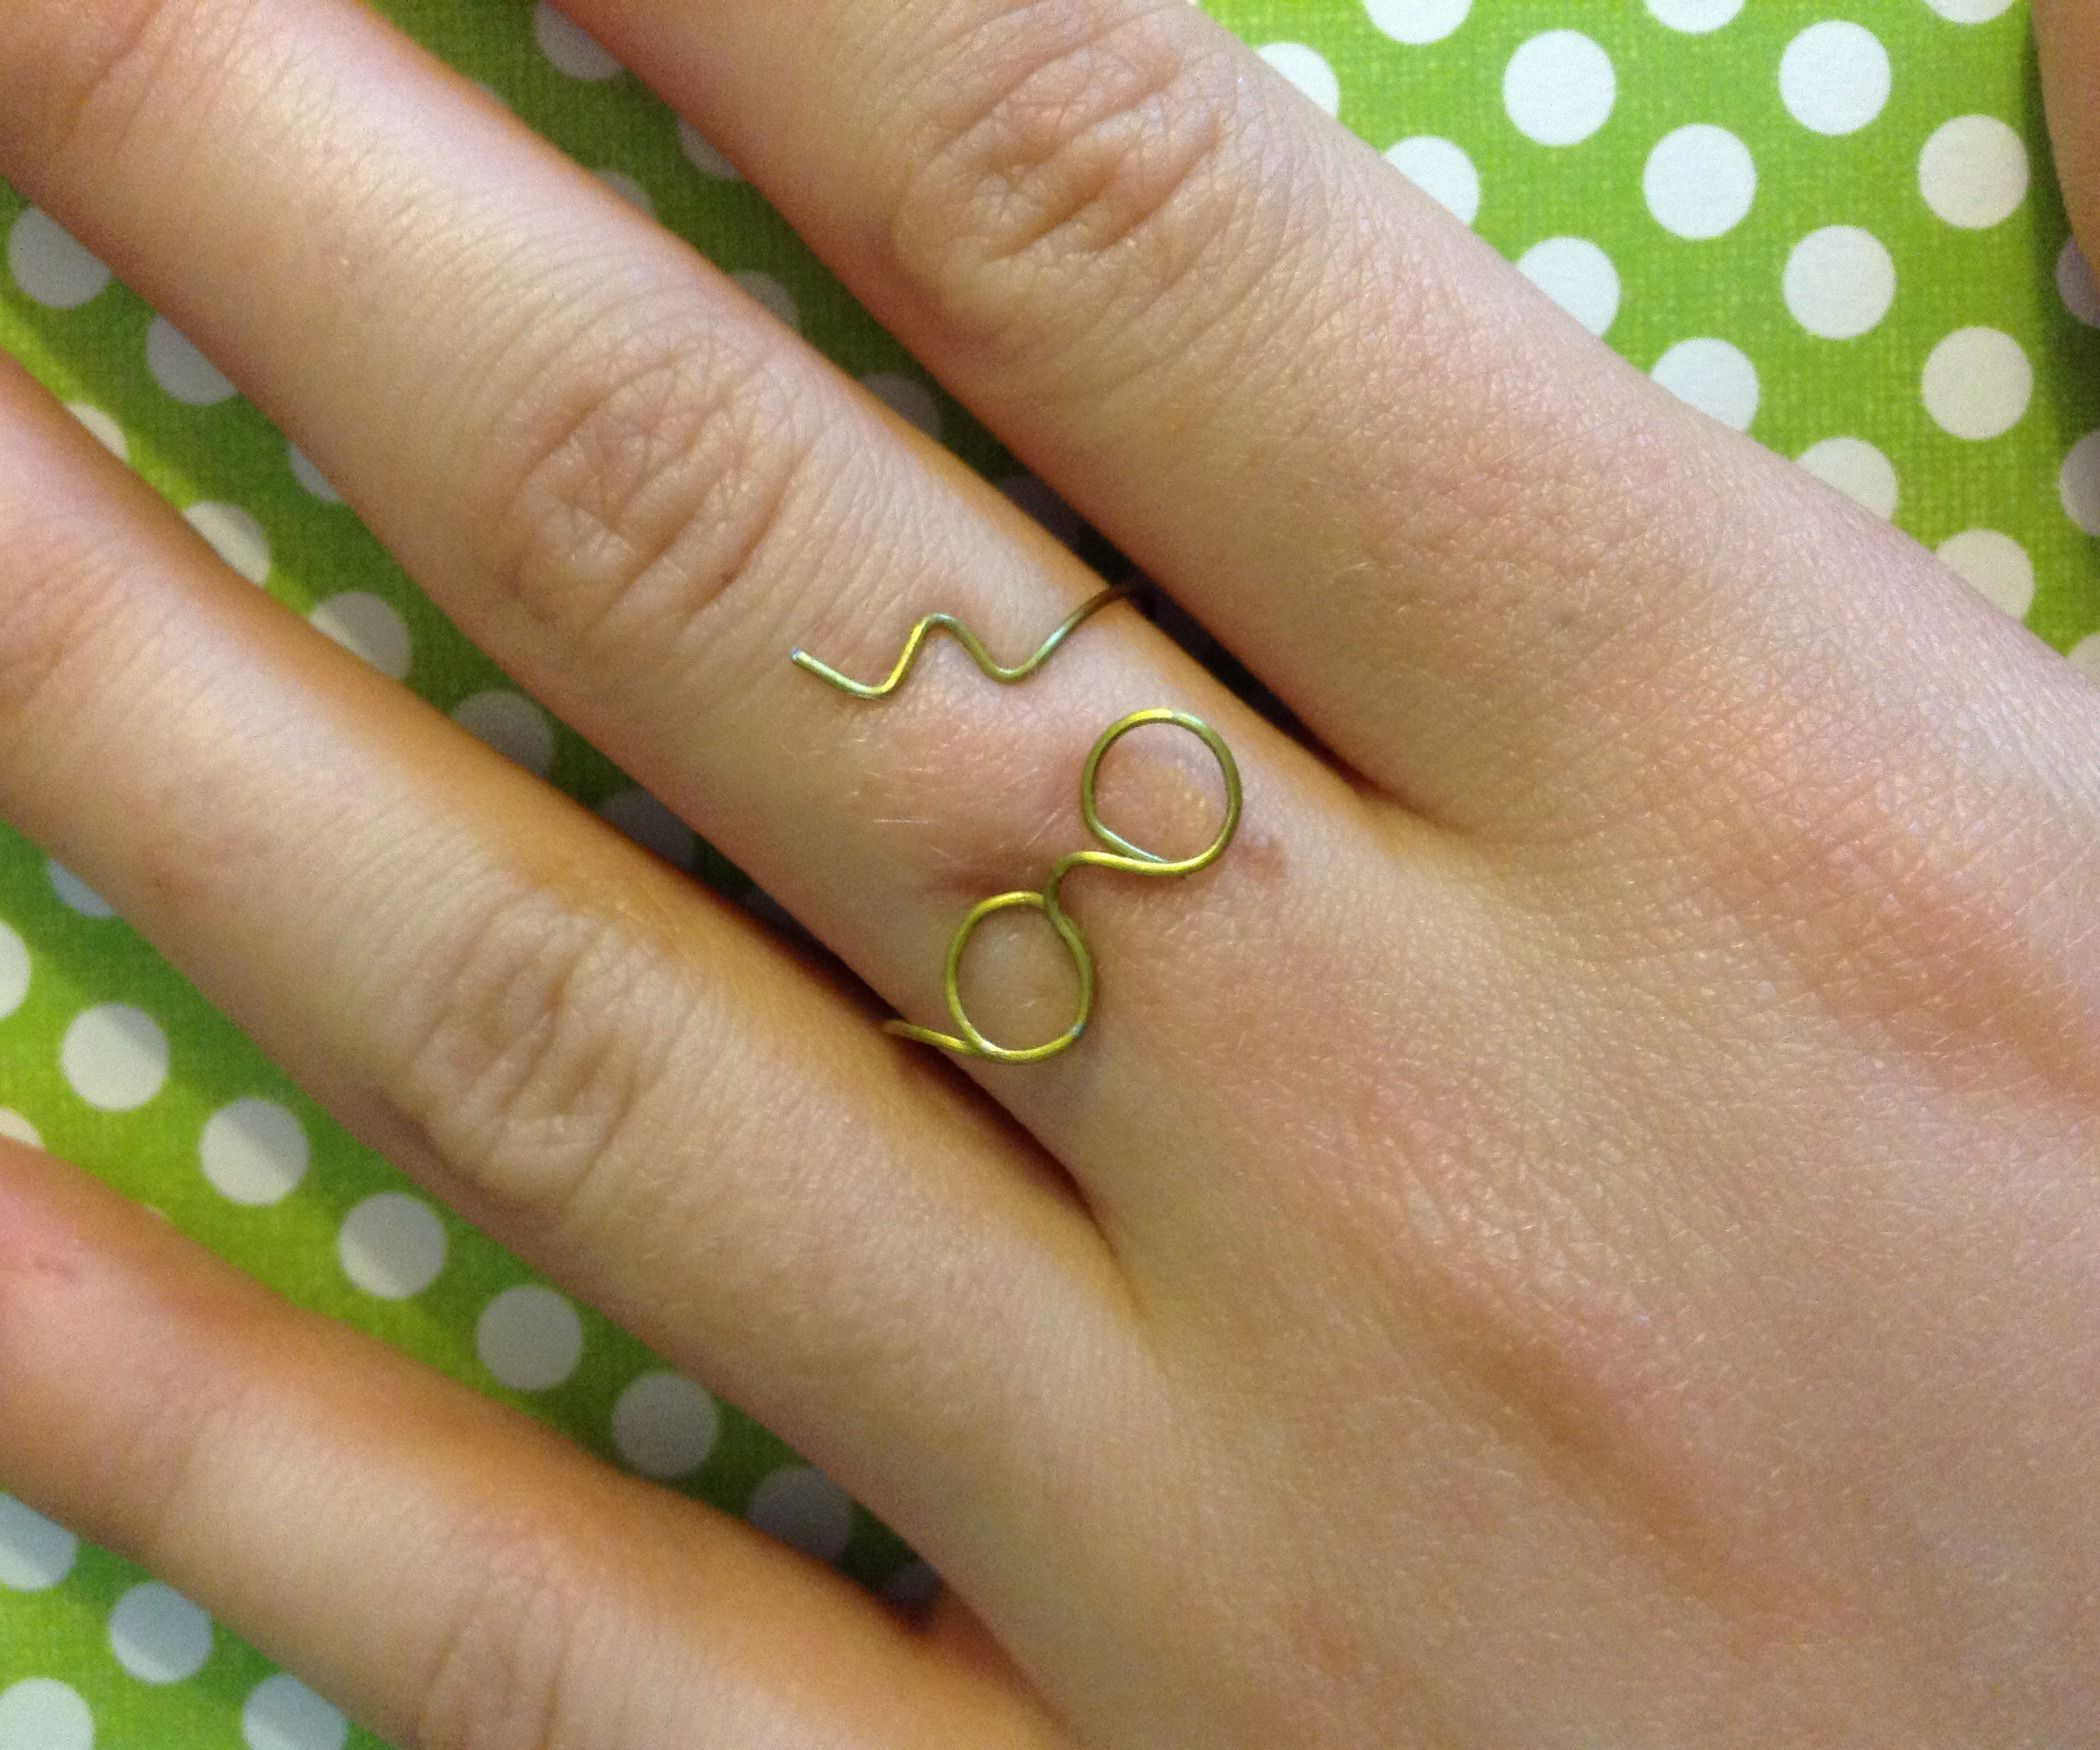 Harry potter lightning bolt ring harry potter glasses harry hey harry potter fans its momo and today ill show you how to make solutioingenieria Choice Image